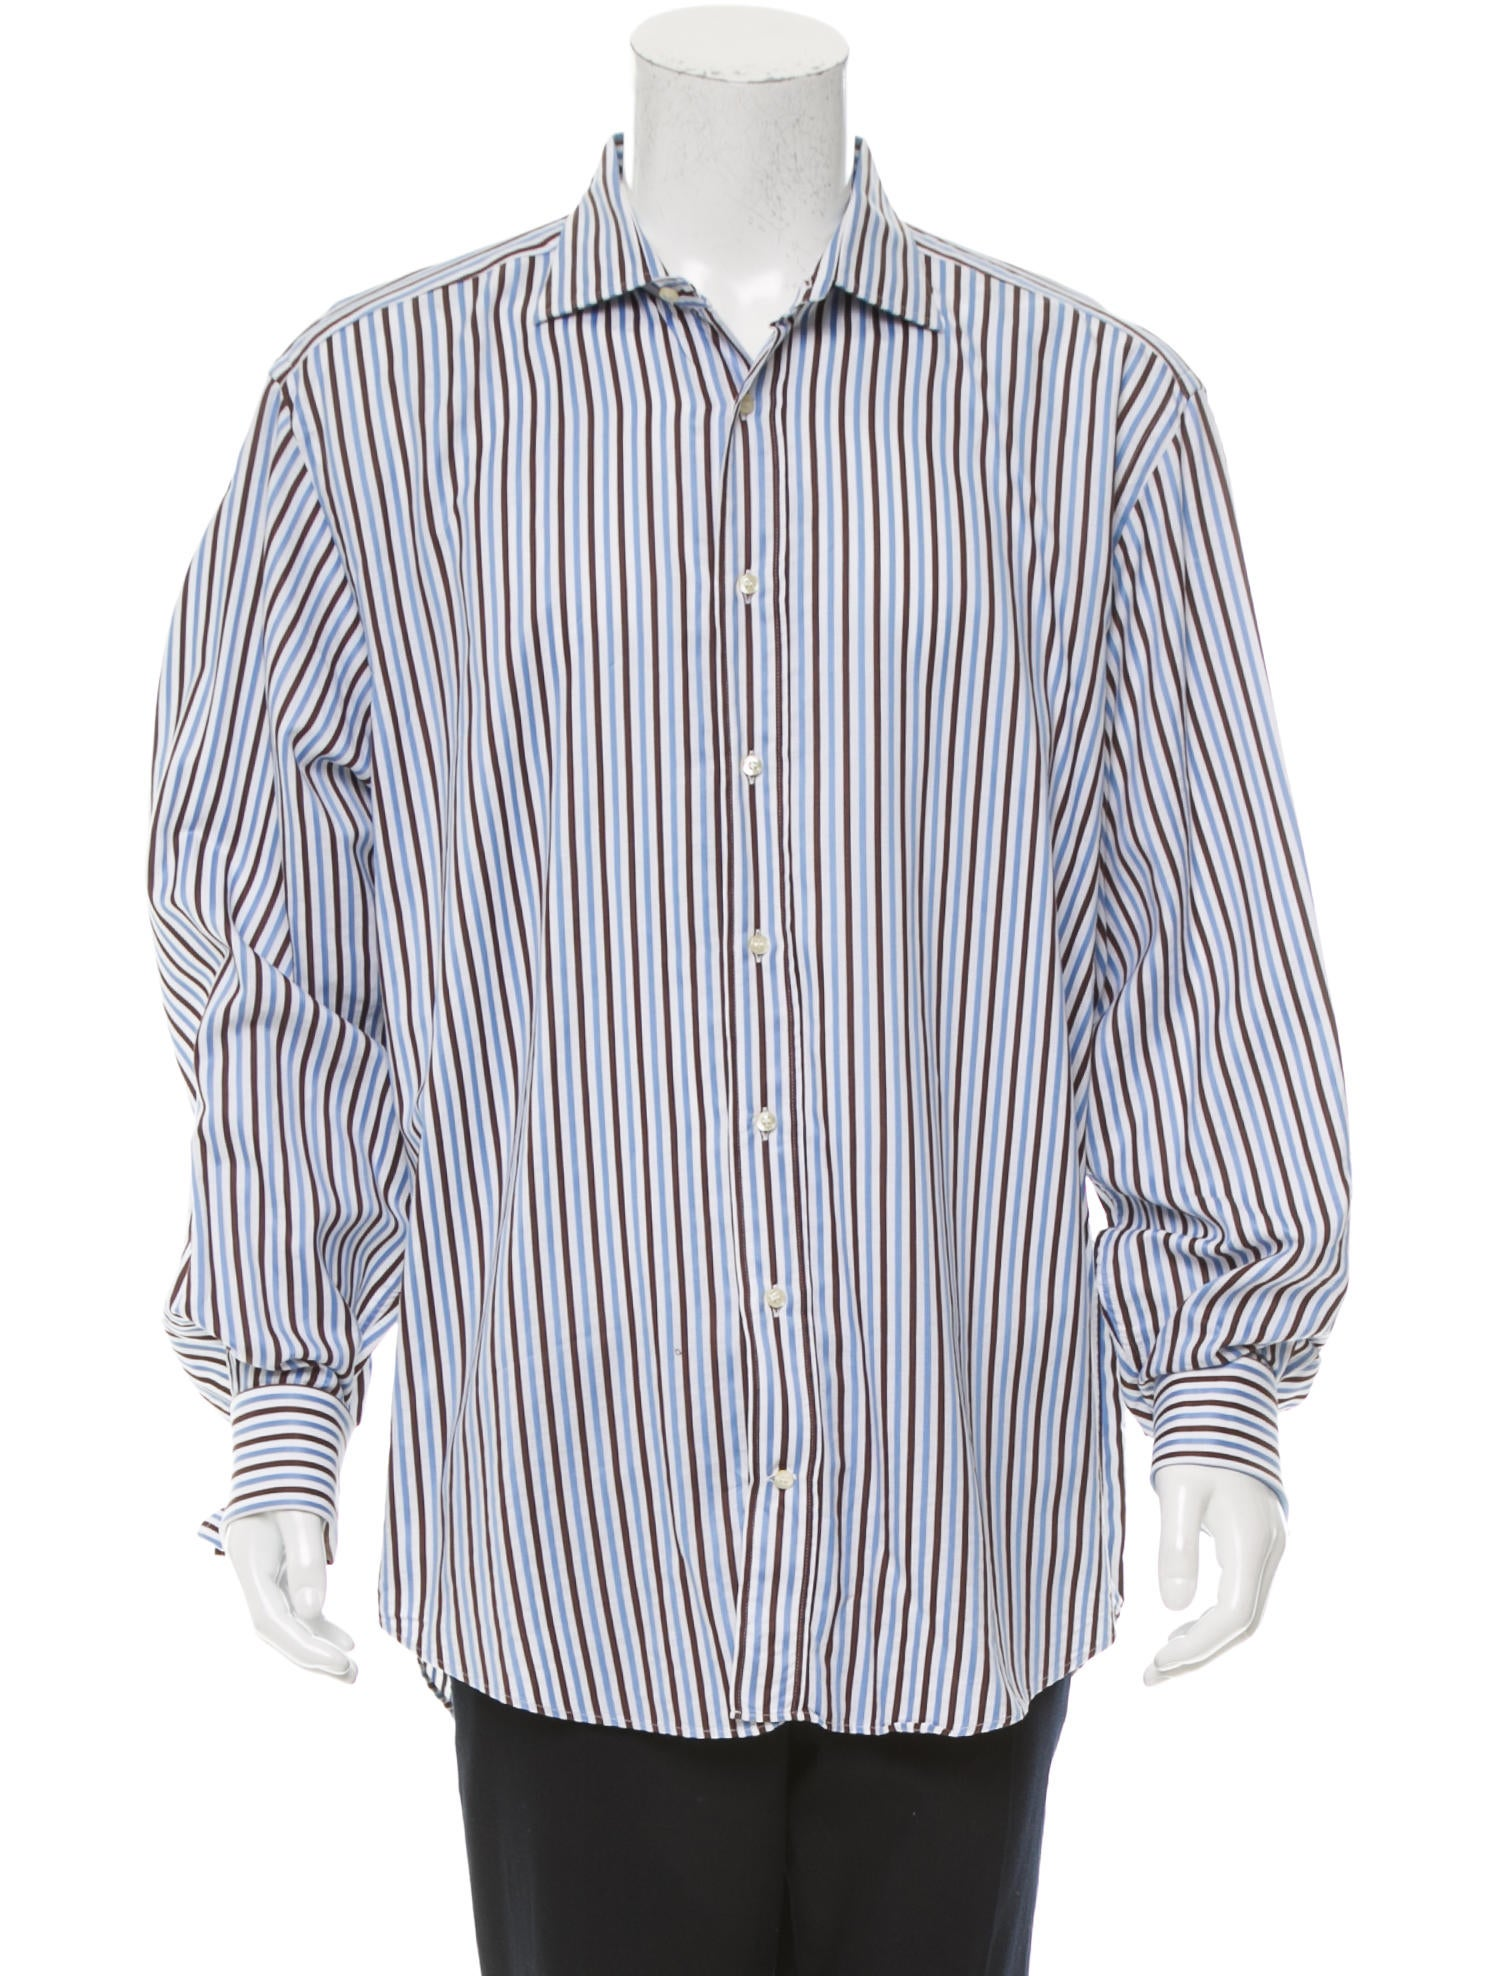 Etro striped button up shirt clothing etr44224 the for Striped button up shirt mens